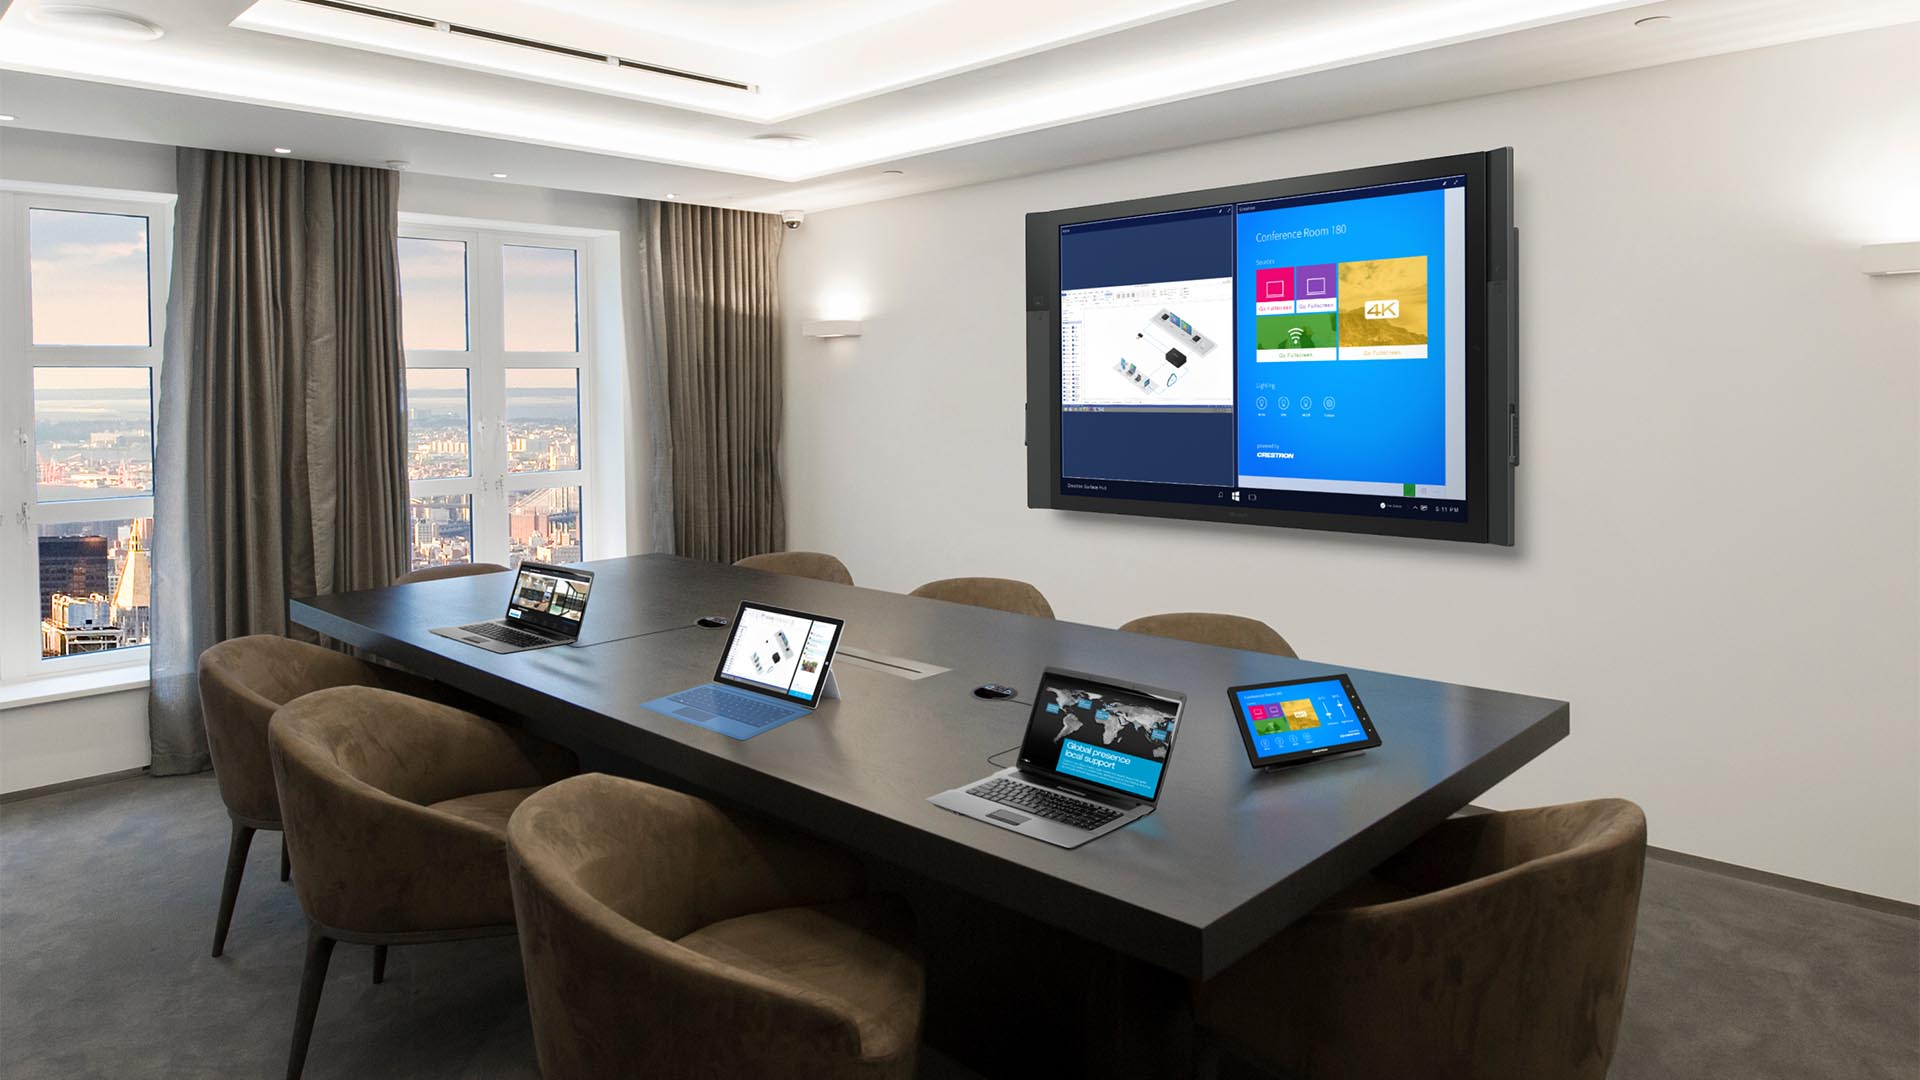 Microsoft Conference Room Booking Software